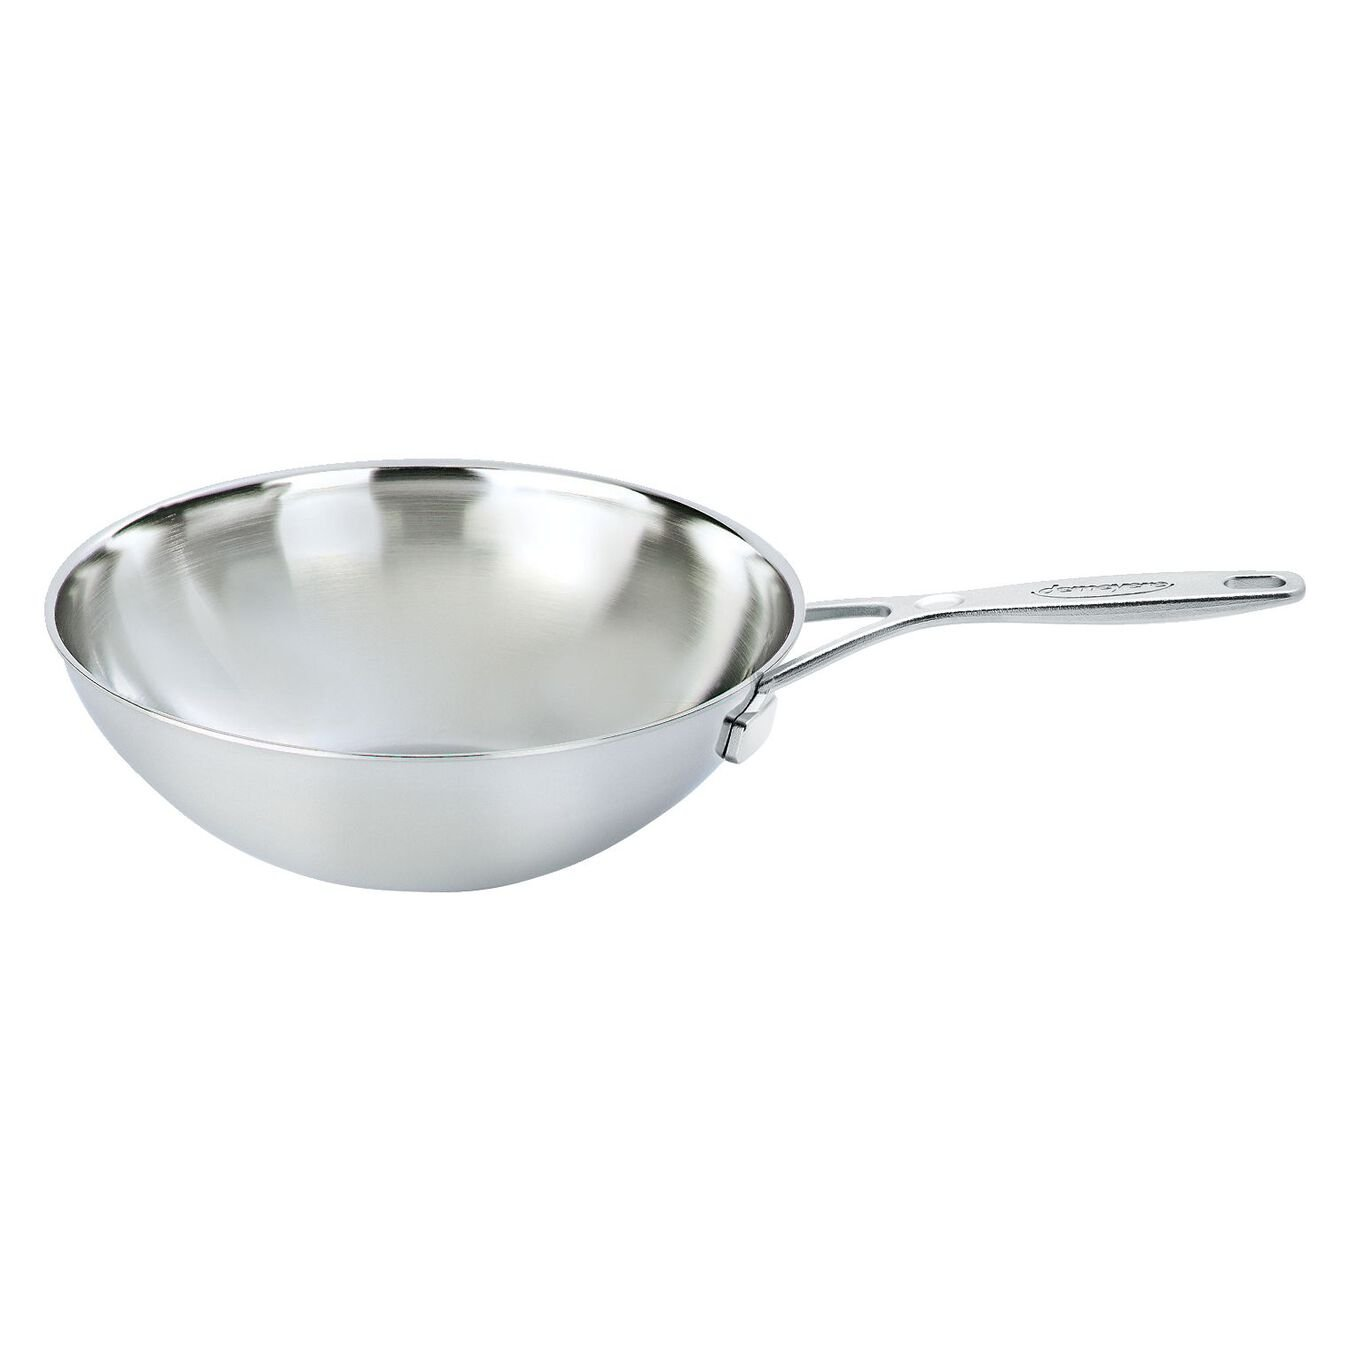 30 cm 18/10 Stainless Steel Wok without lid,,large 1